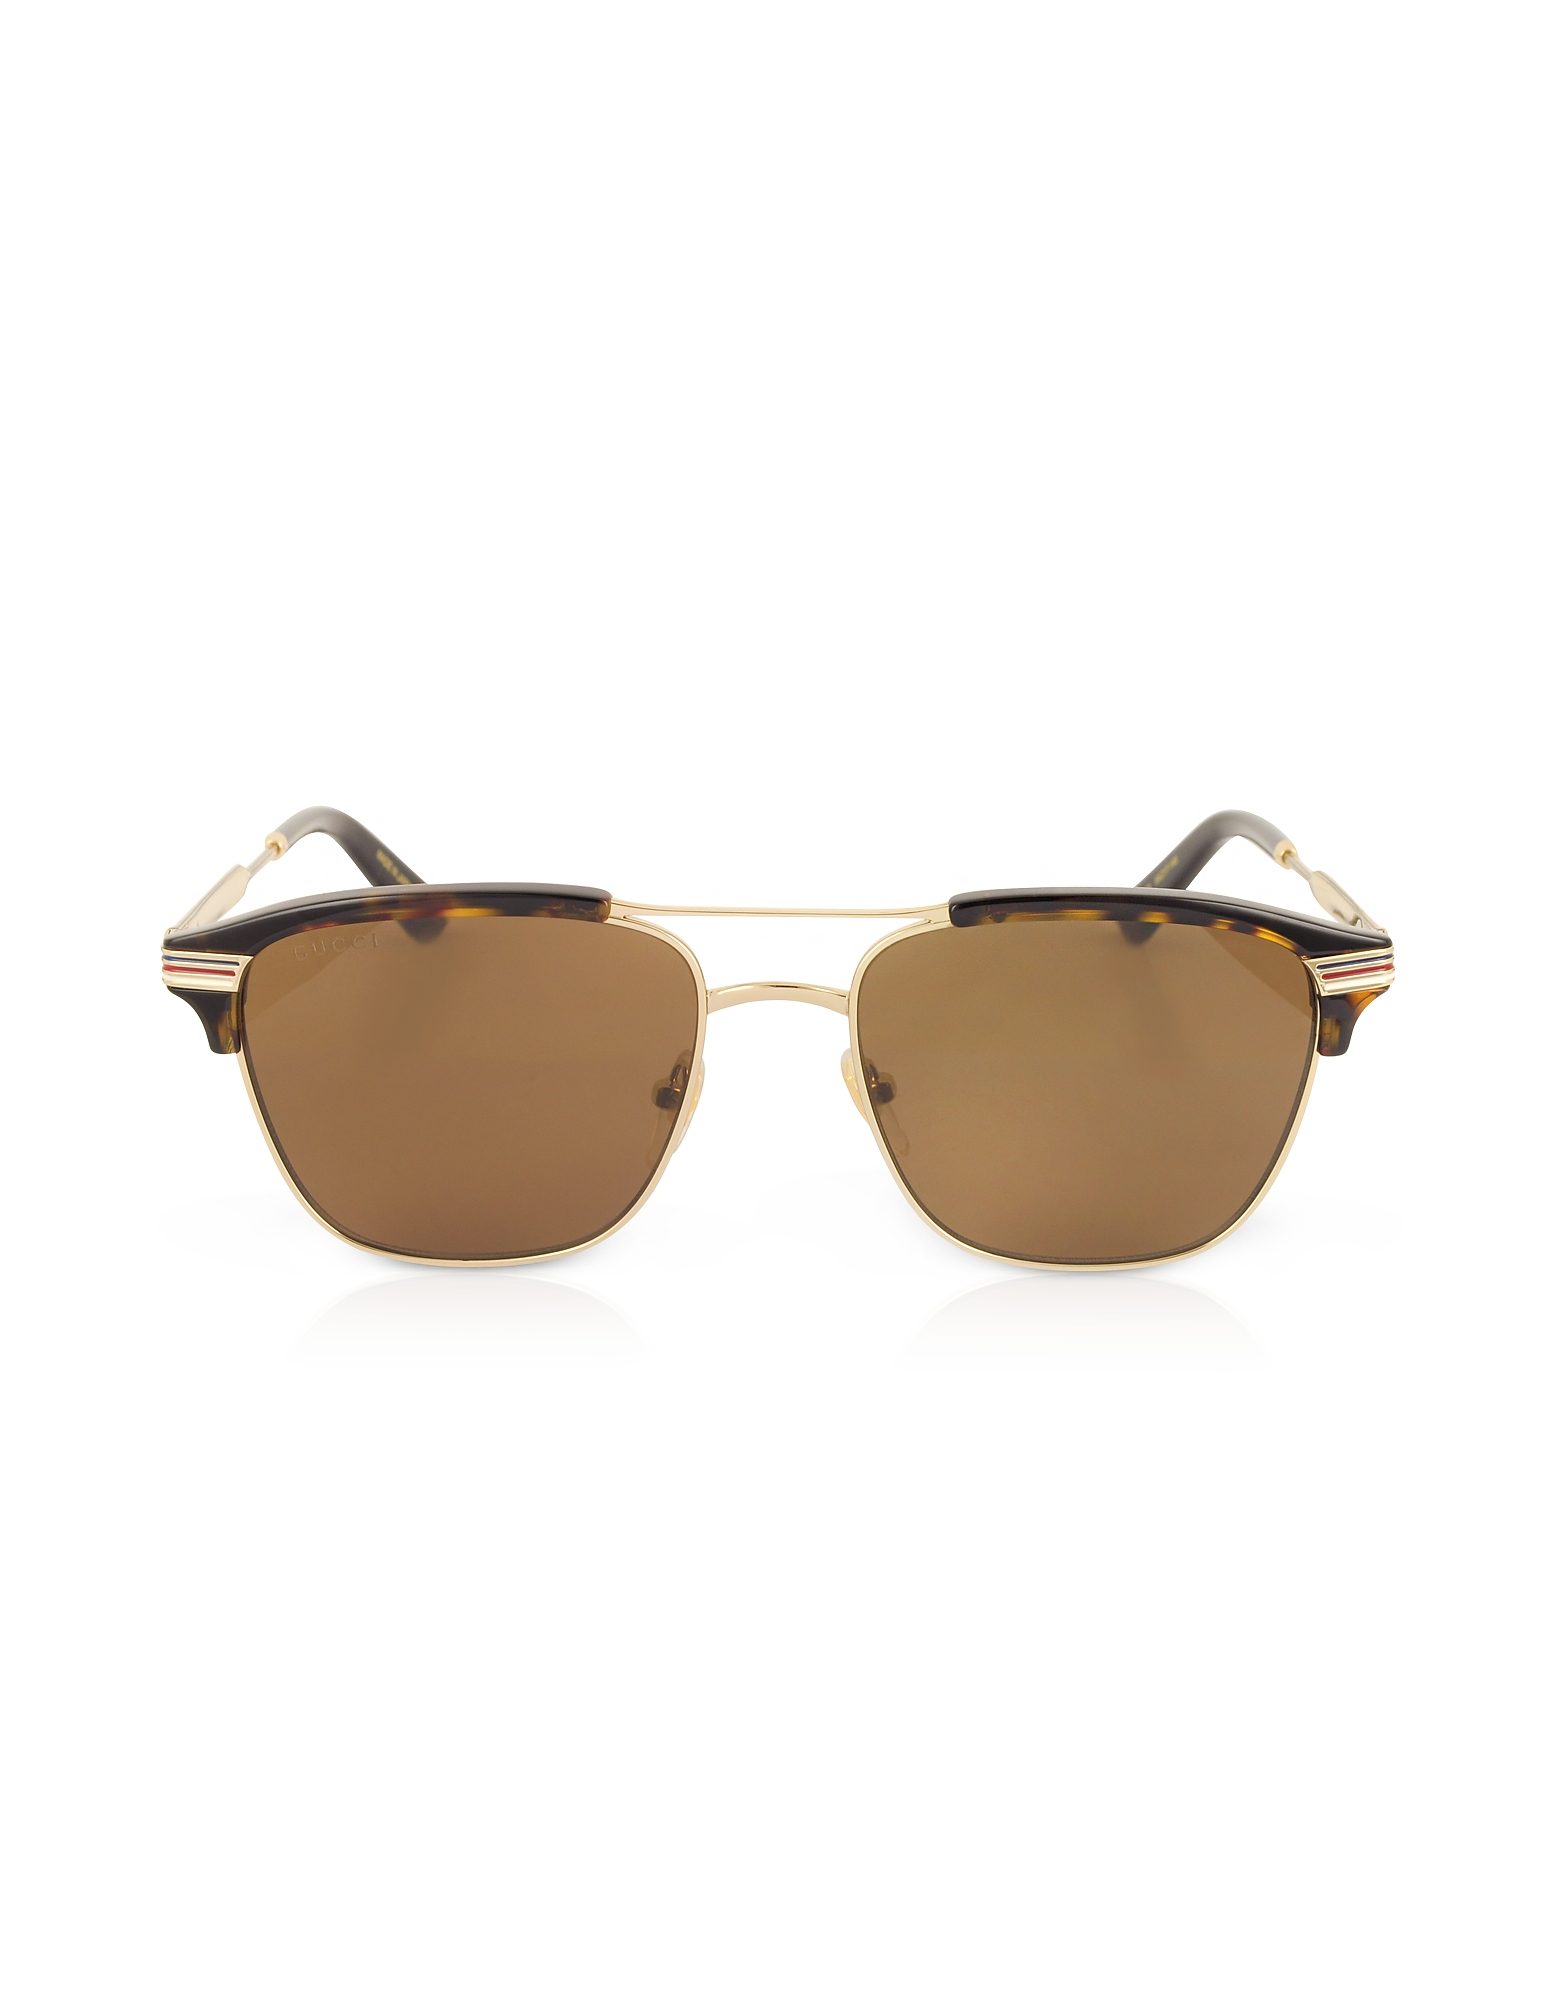 Gucci Designer Sunglasses, GG0241S 002 Square-frame Metal Sunglasses